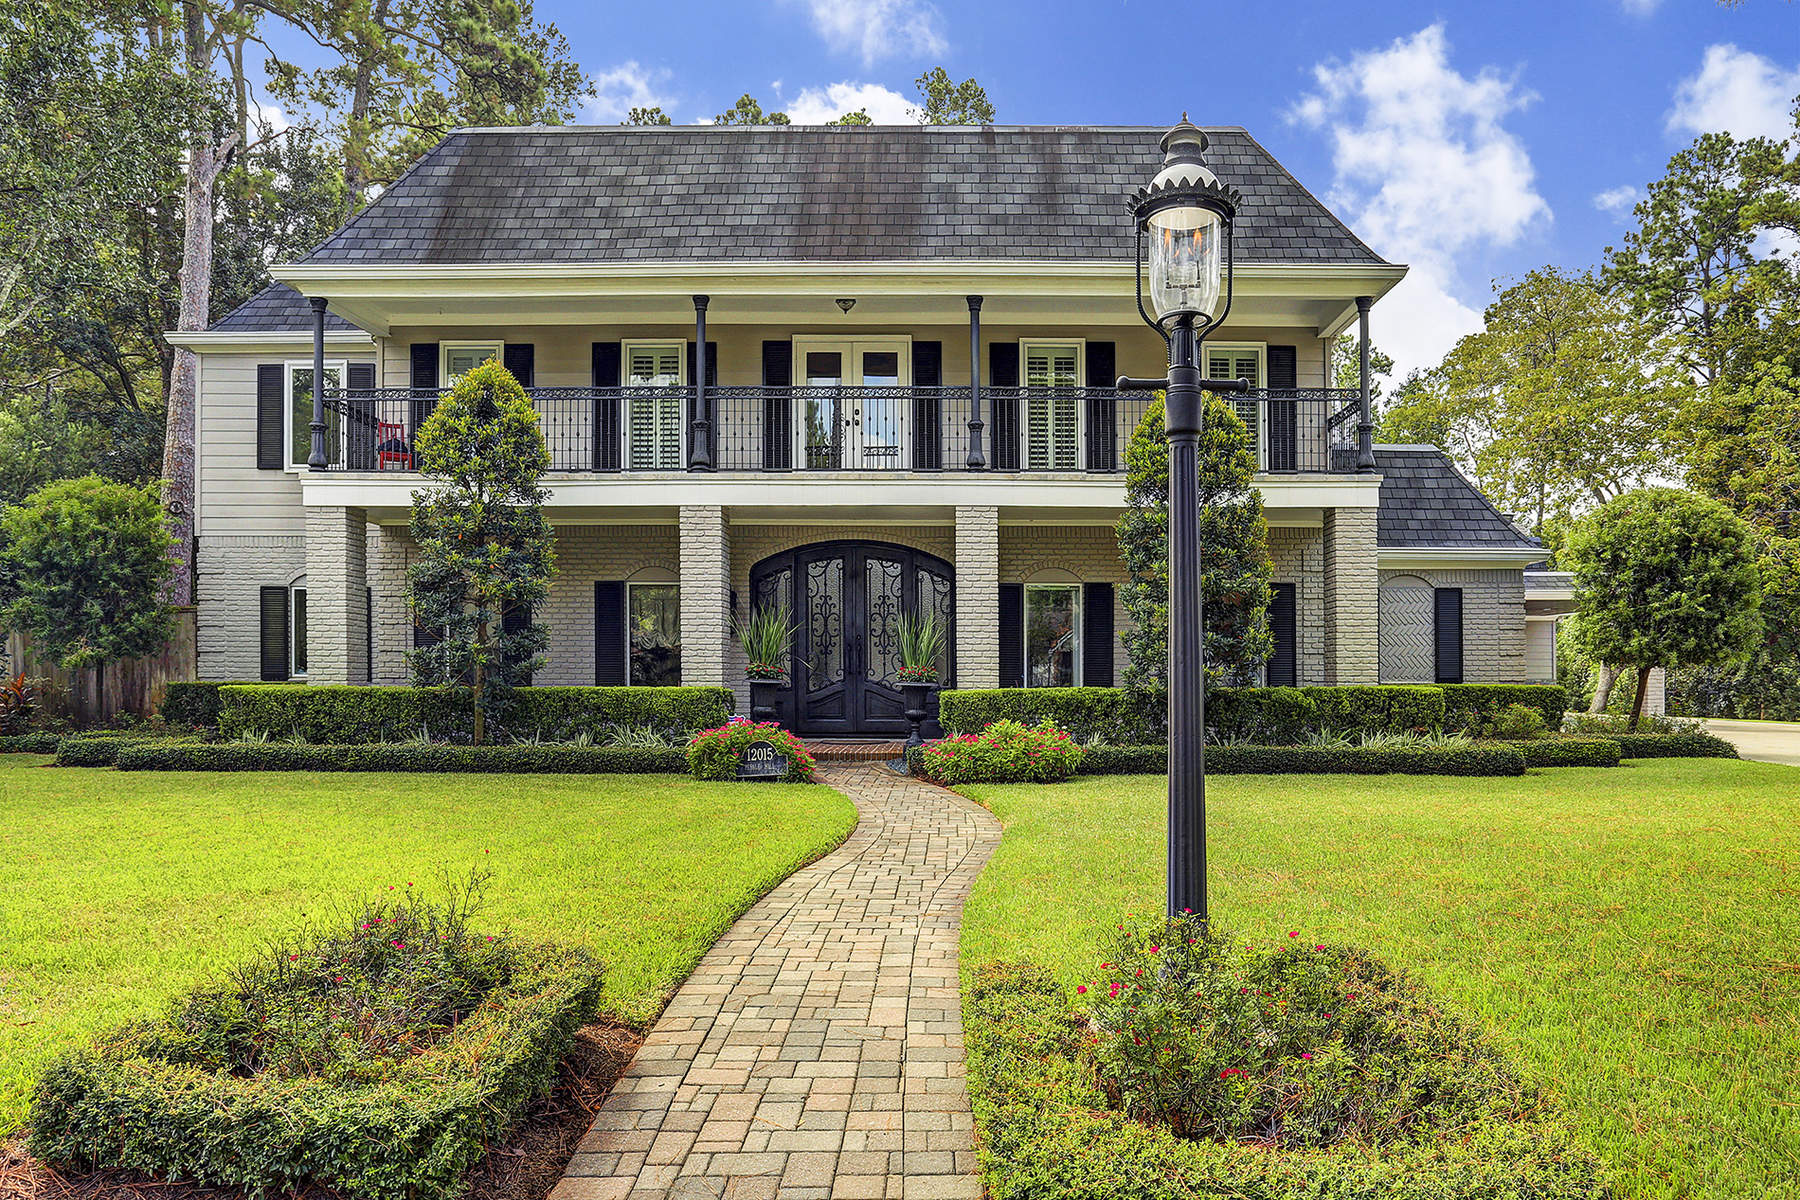 Single Family Home for Sale at 12015 Pebble Hill 12015 Pebble Hill Bunker Hill Village, Texas 77024 United States